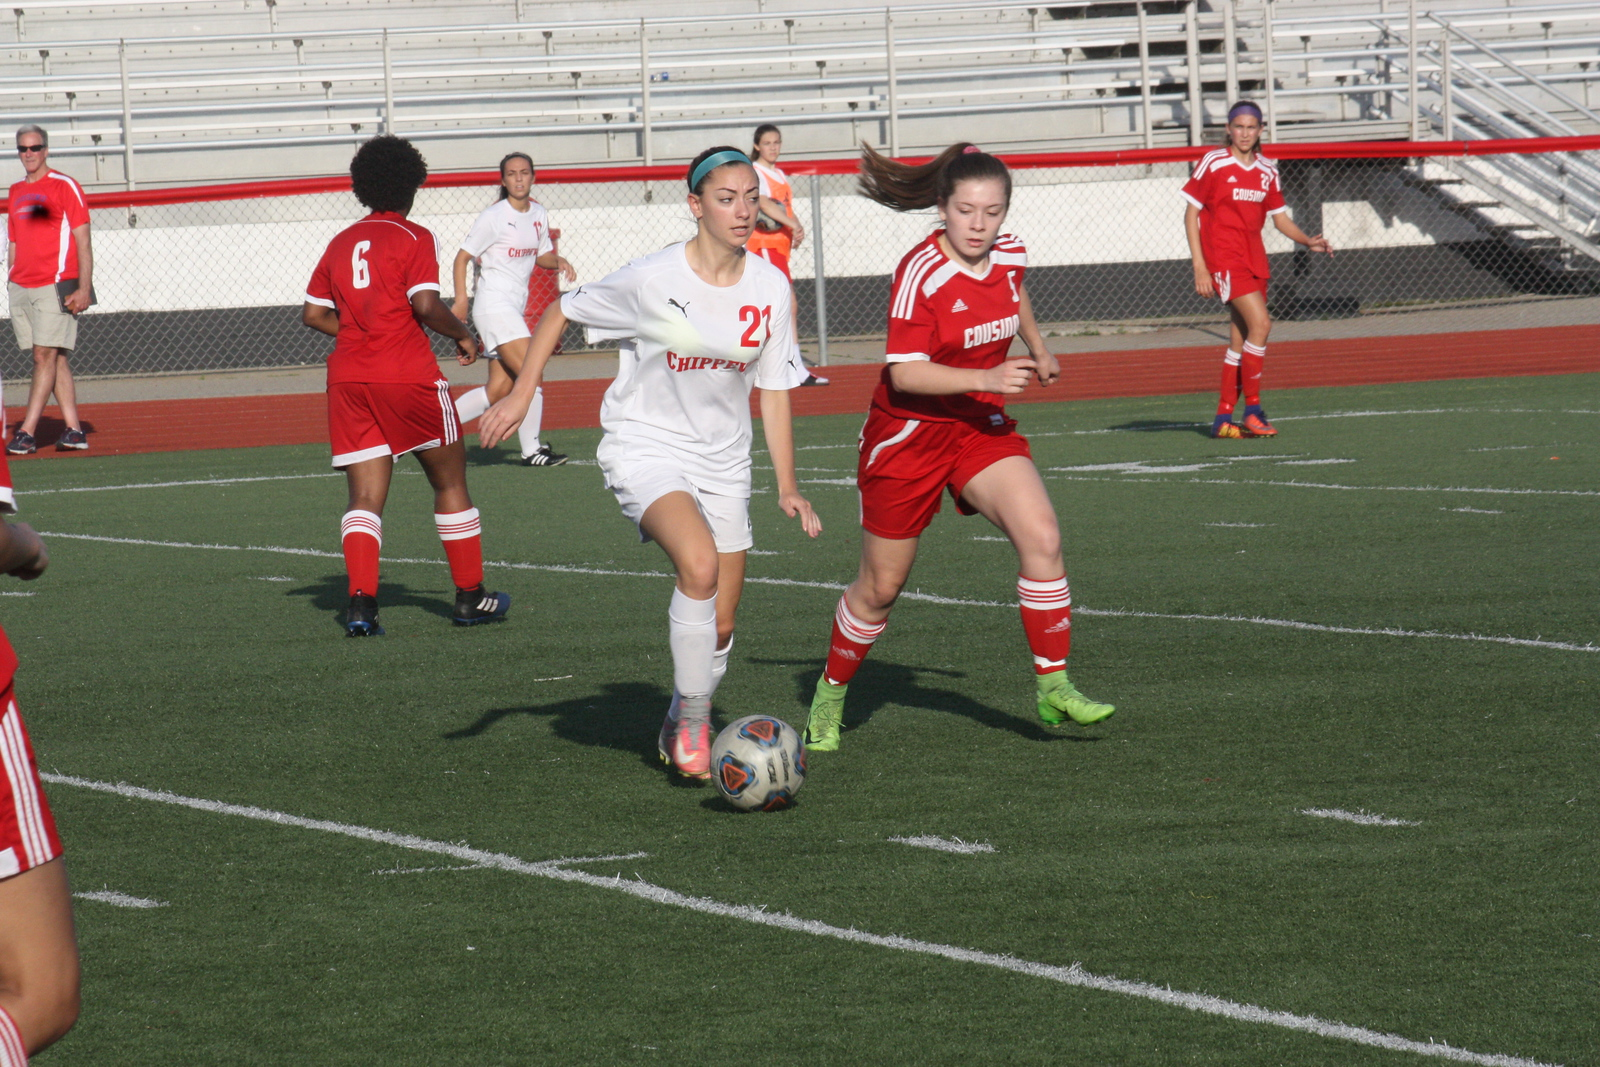 Chippewa Valley's Mikaela Mandala looks to pass the ball while defended by Cousino's Mia Suratt during their MAC Blue Division match on May 14, 2018. (Photo gallery by Kevin Lozon)